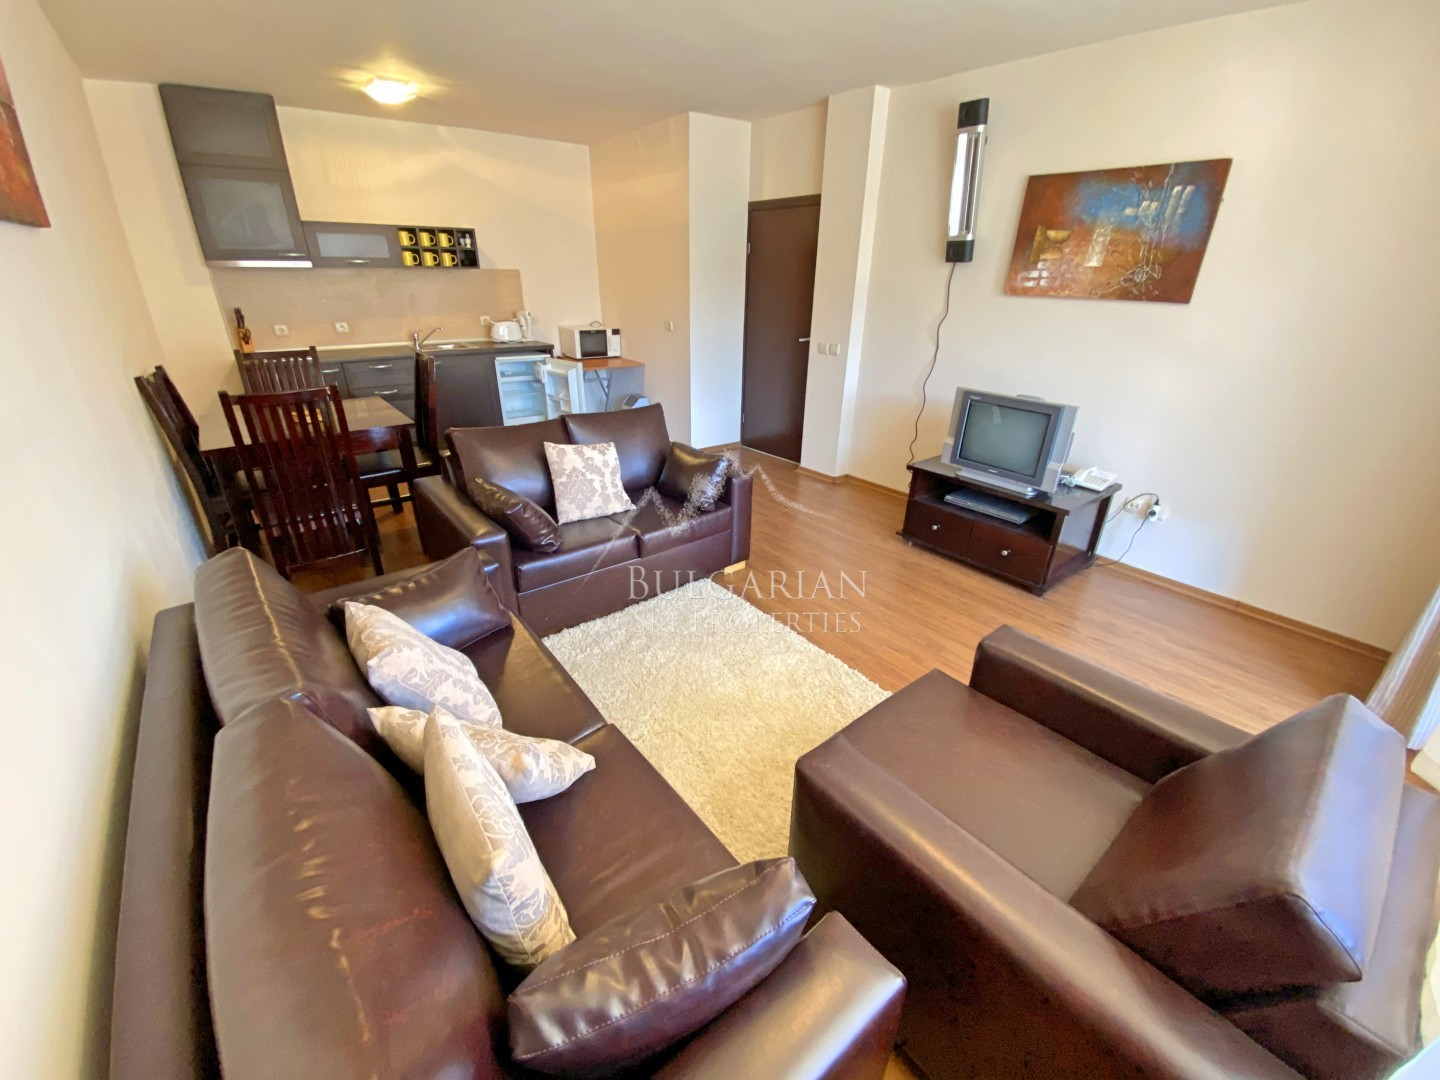 Bansko: sunny one-bedroom apartment for sale next to the ski lift